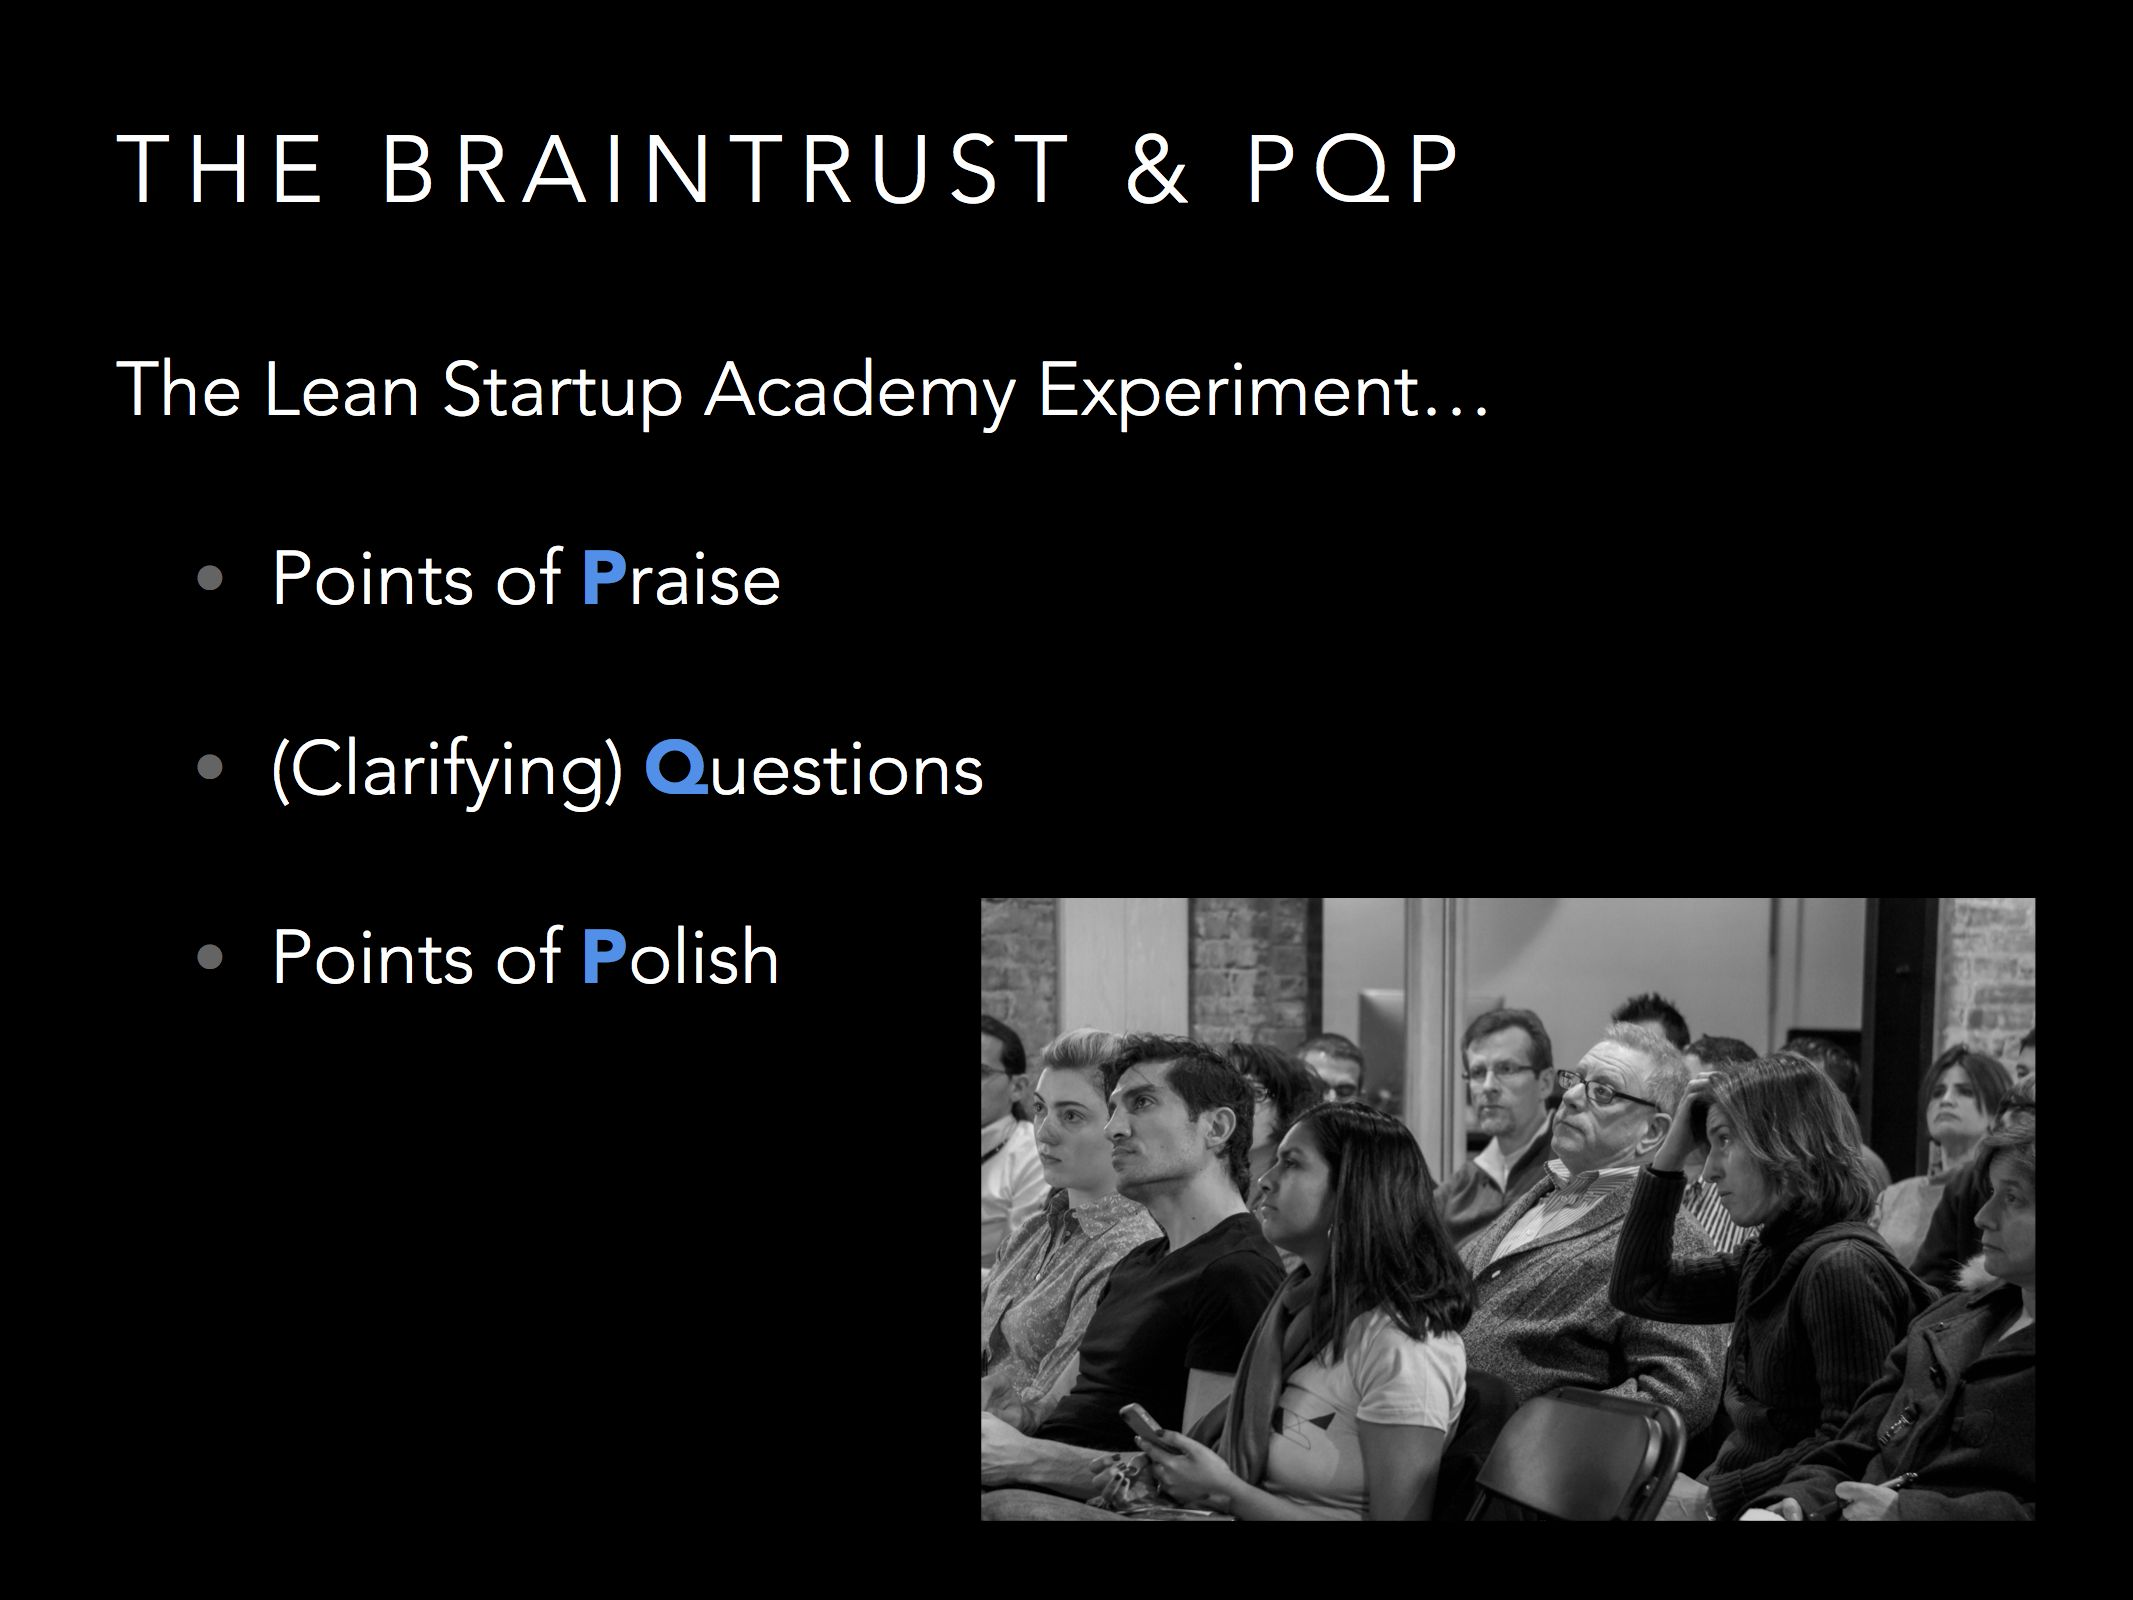 At Lean Startup Academy we ran our own braintrust. Since we didn't know the exact format of Pixar, we used the Praise, Question, Polish approach to giving feedback. It's a great, supportive process that has gotten great feedback.